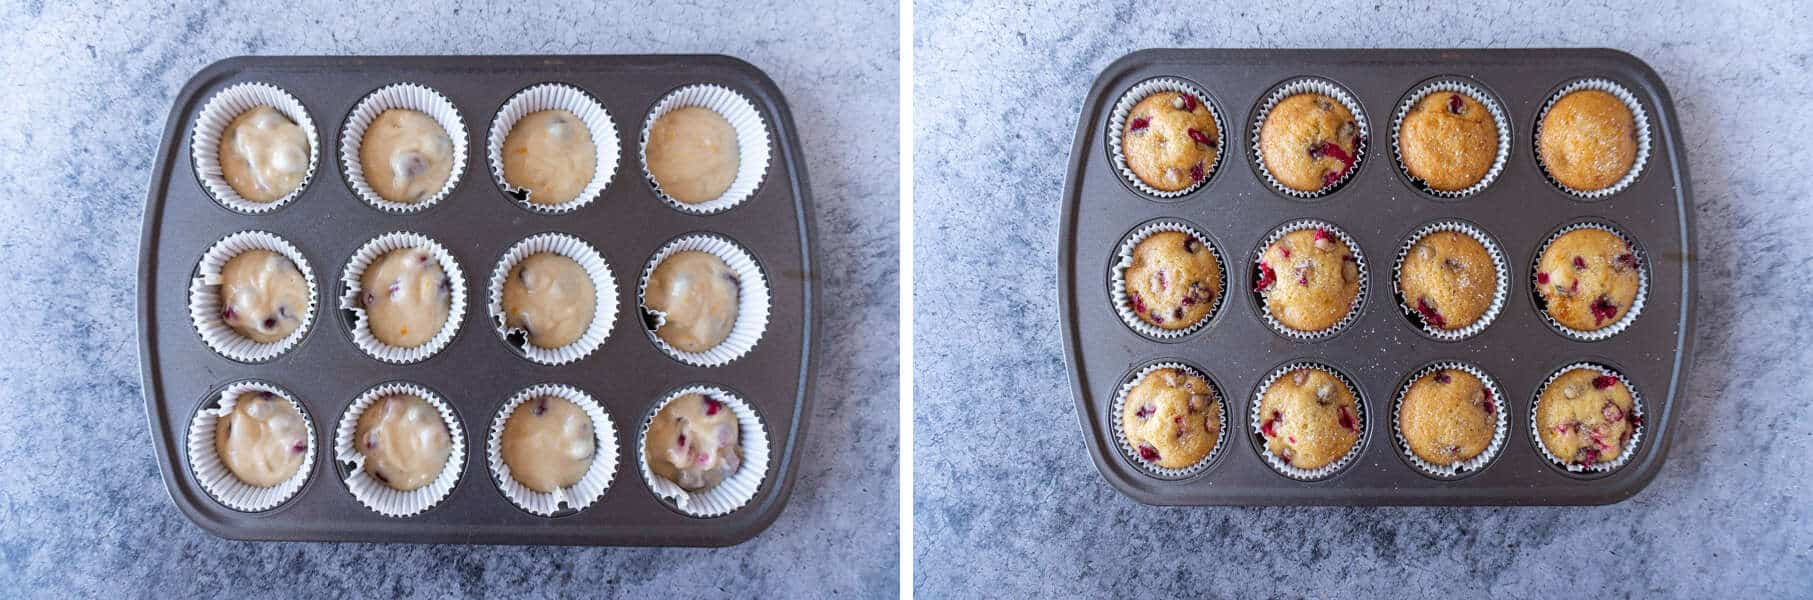 Orange Cranberry Muffins Before and After being Baked